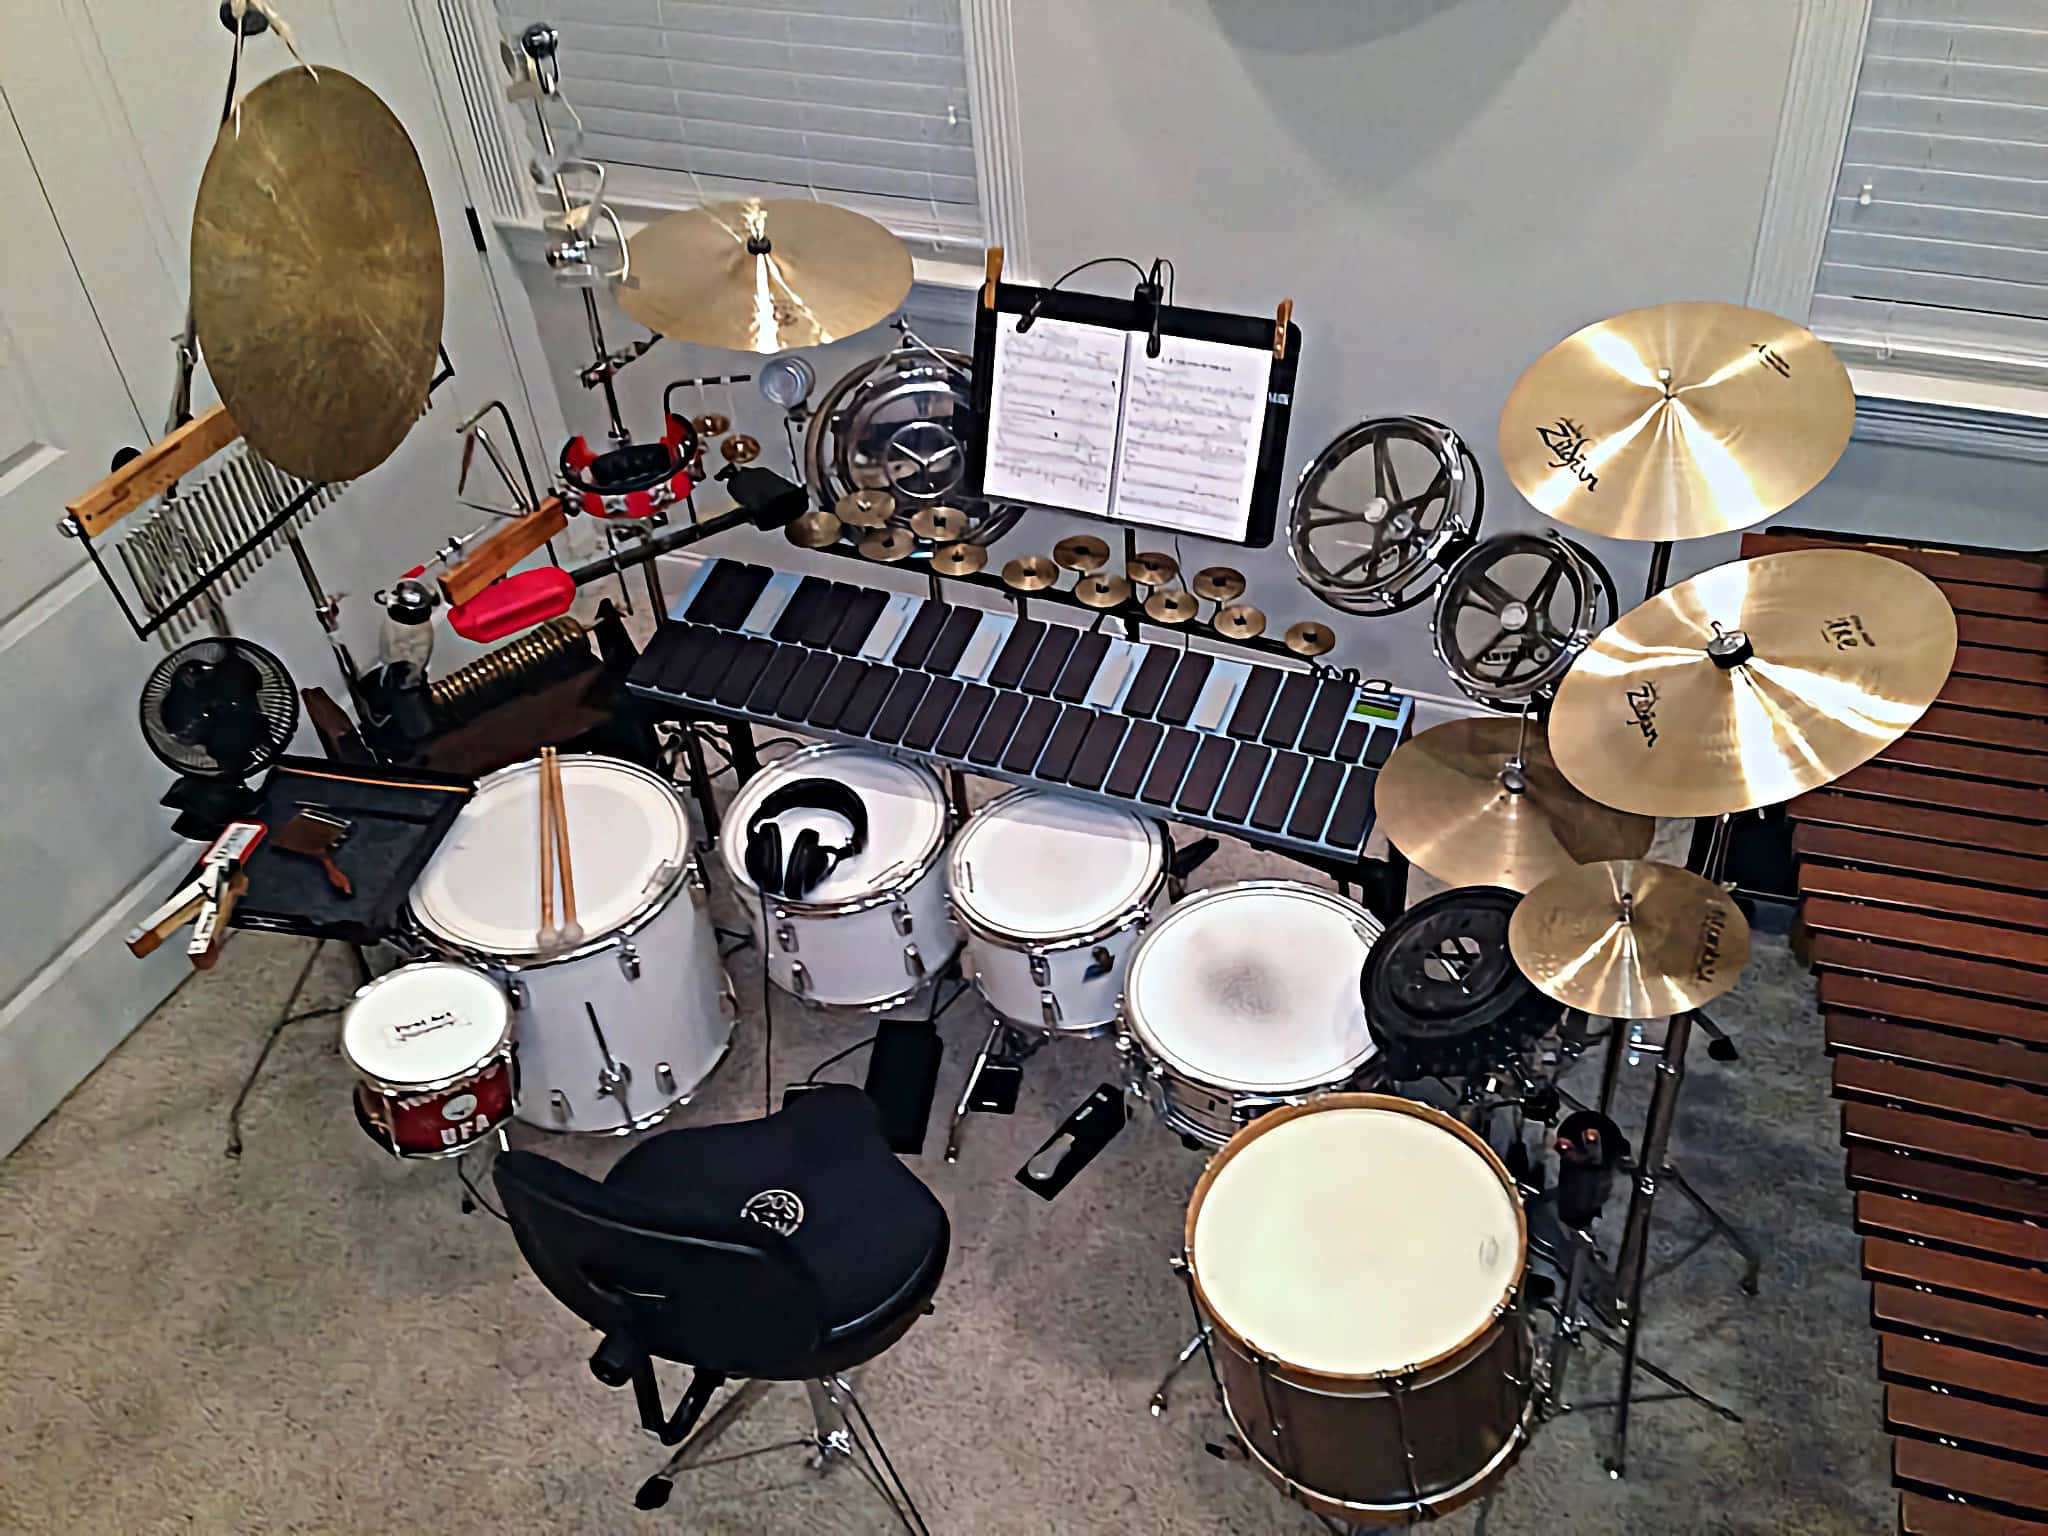 Guy Gauthreaux's setup for Les Miserables at the Theatre Baton Rouge in Baton Rogue, Louisiana.